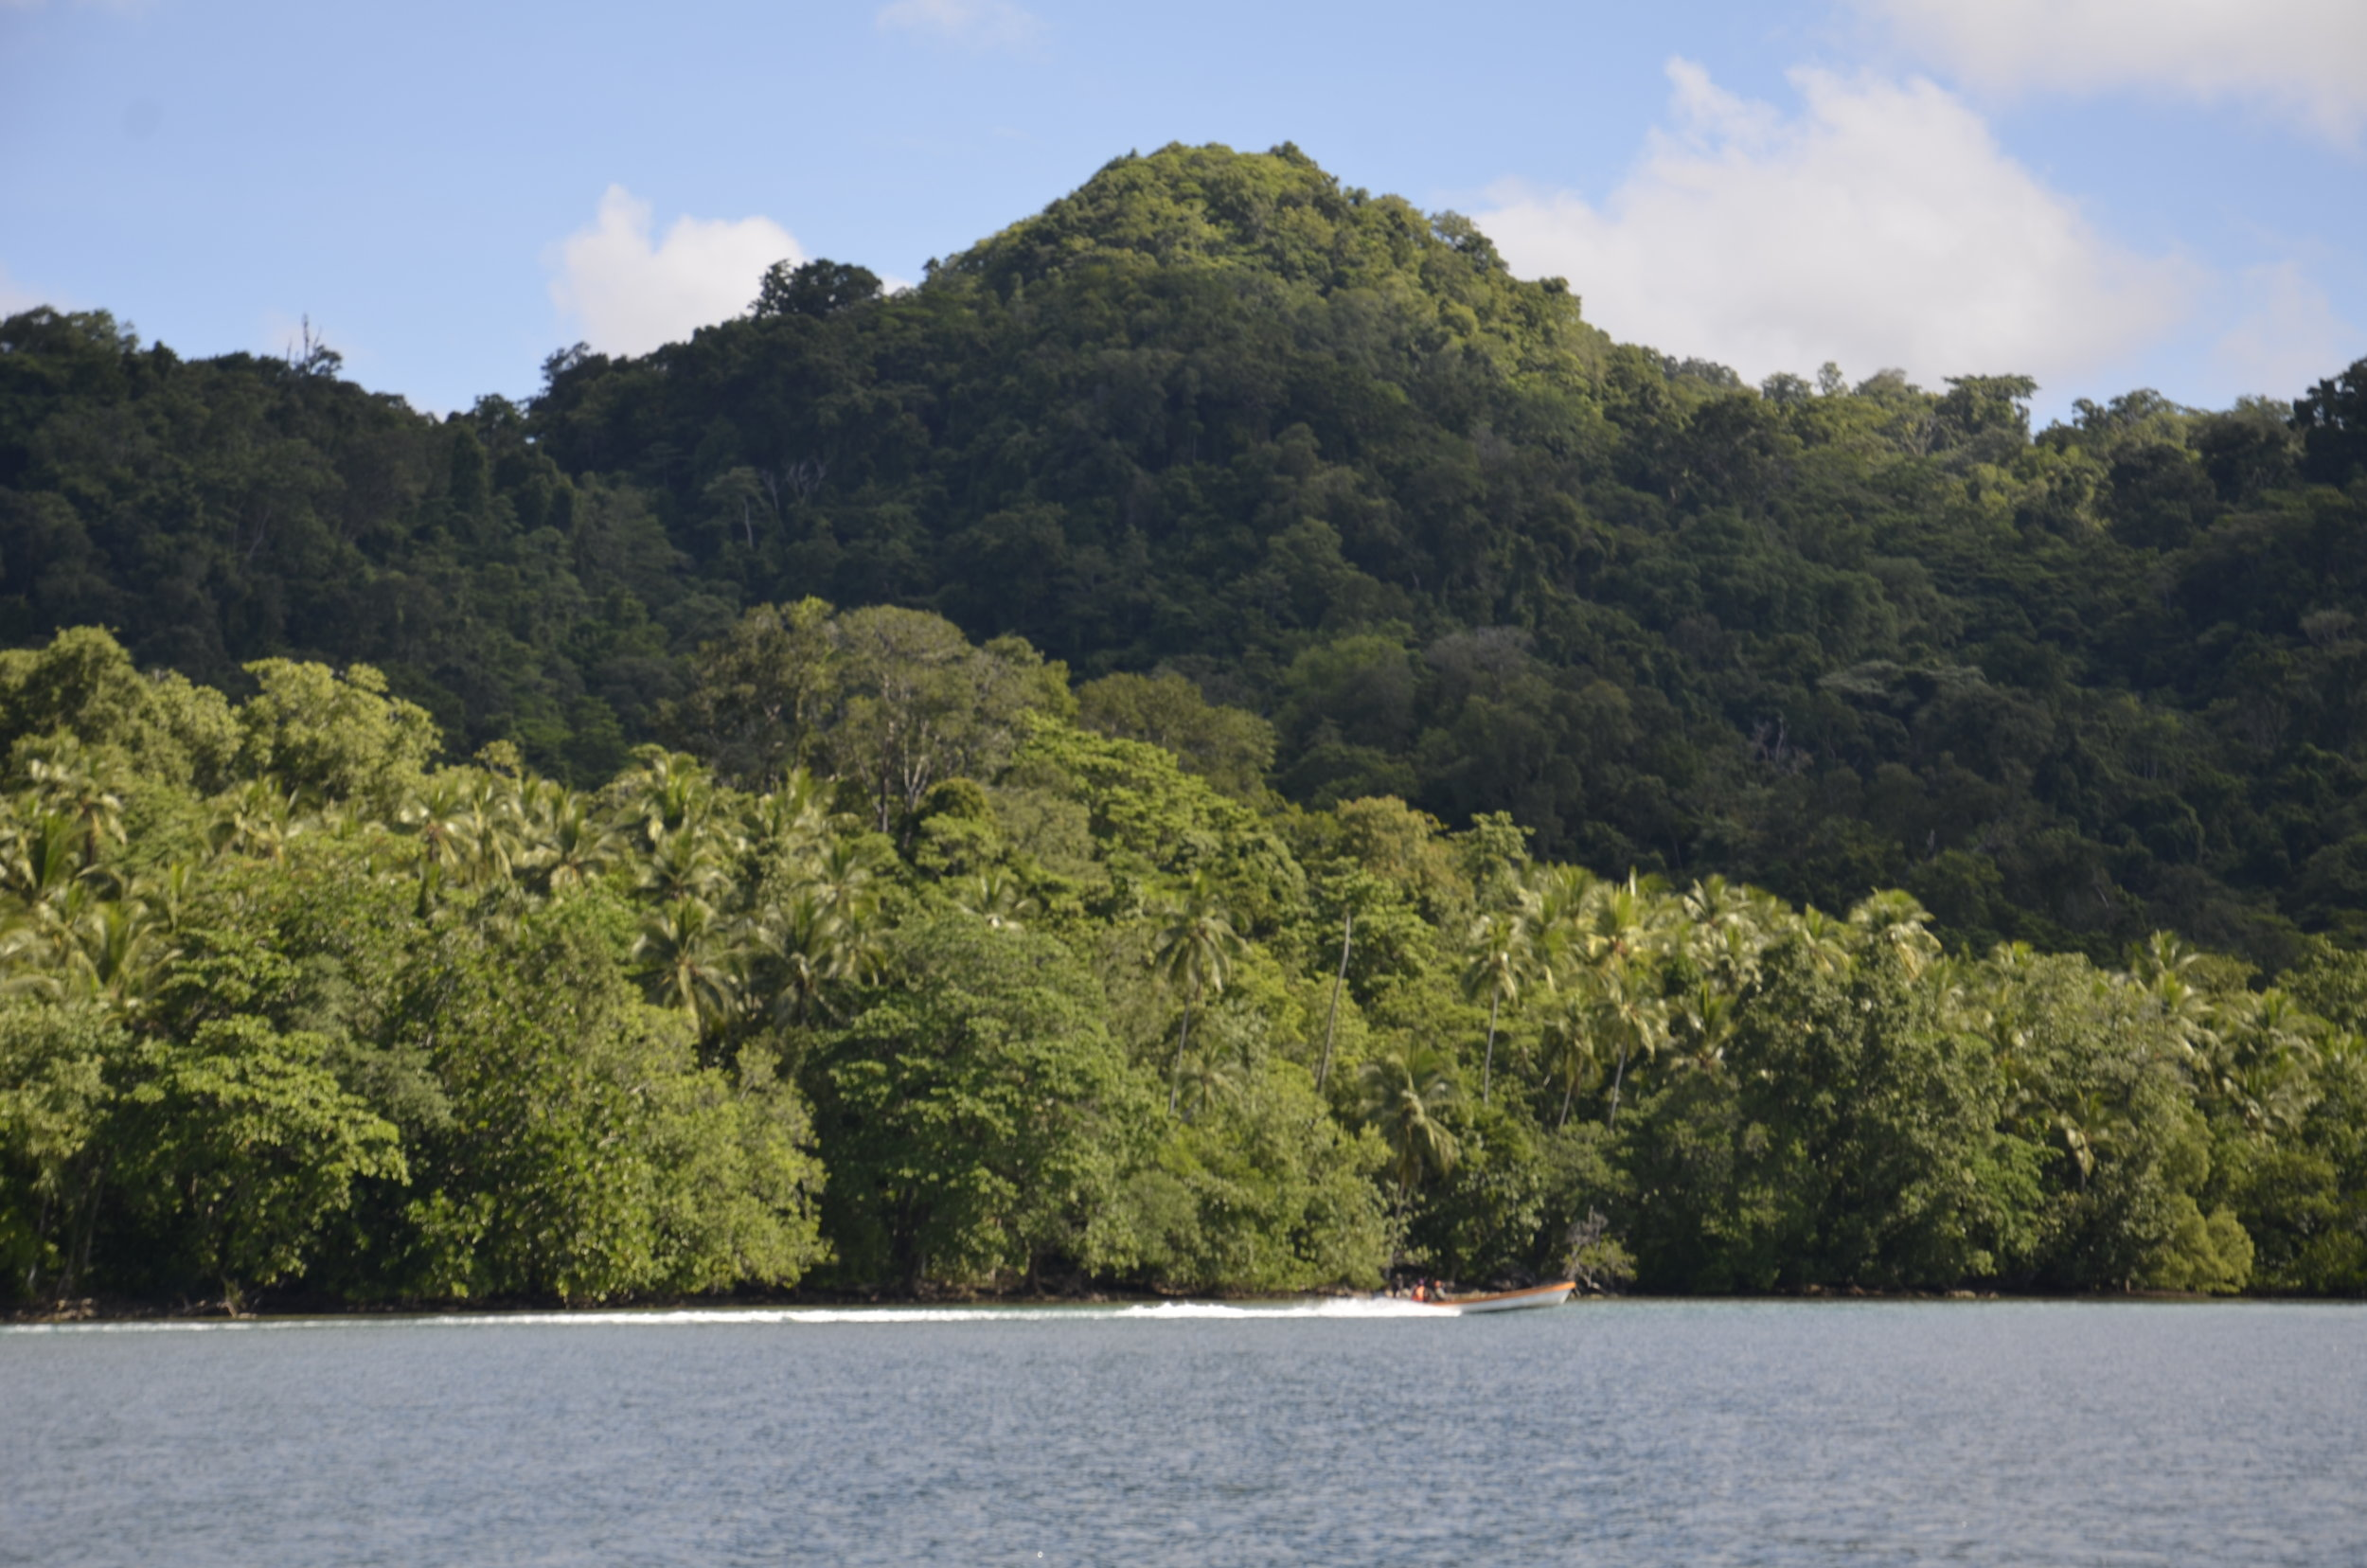 The islands varied in size and if inhabited or not, but all were packed with vegetation.